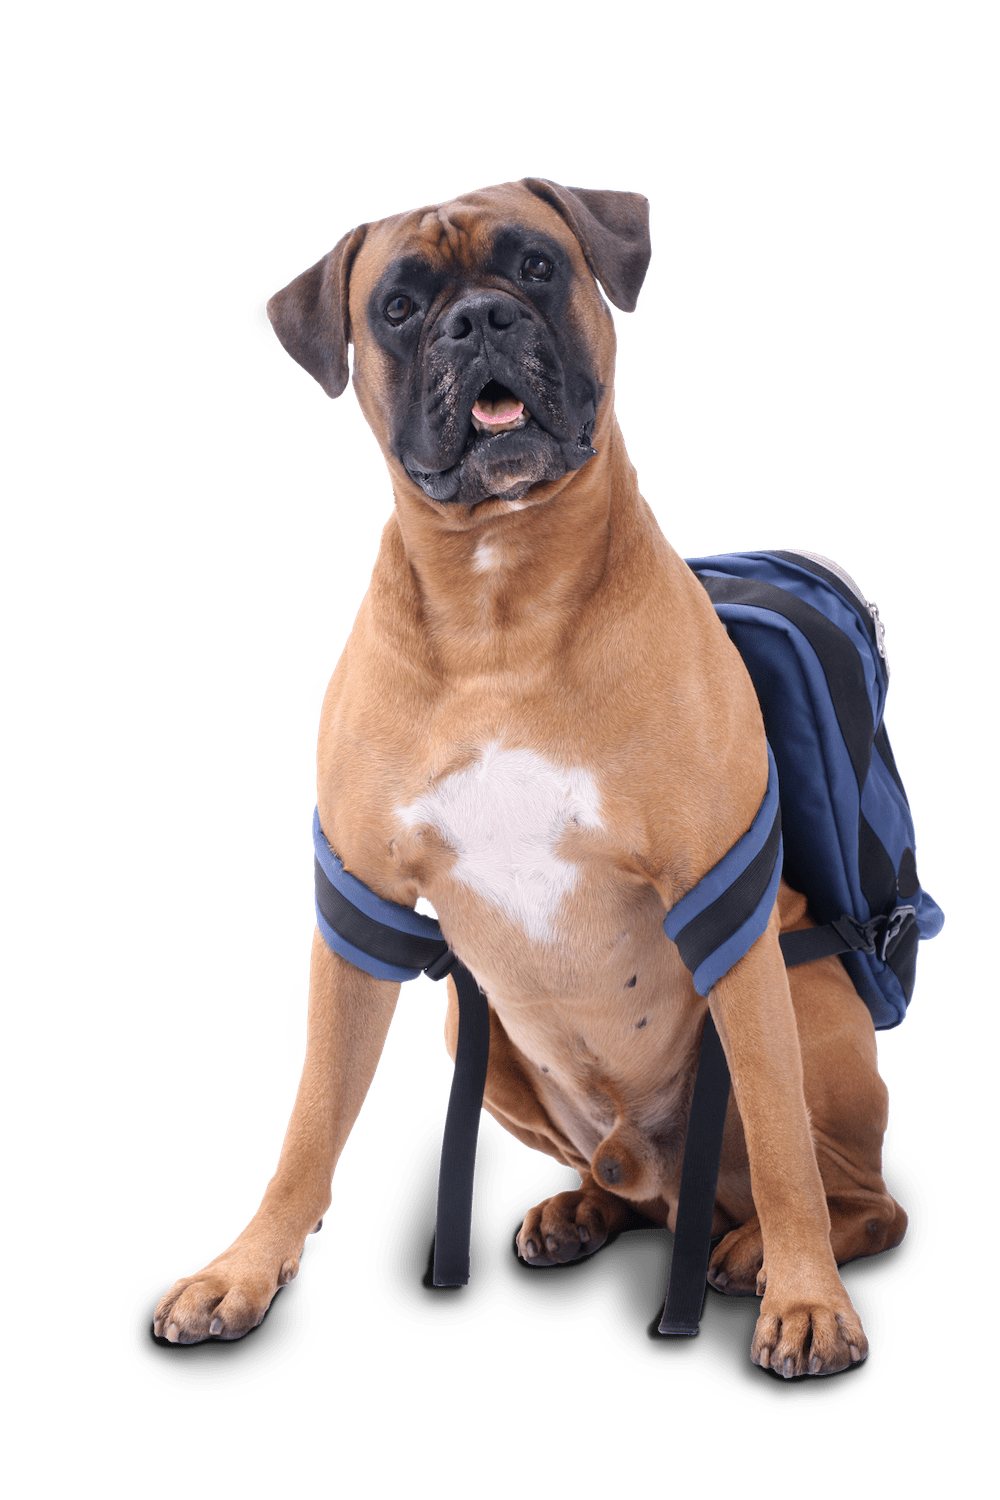 Dog with Blue Backpack Sitting